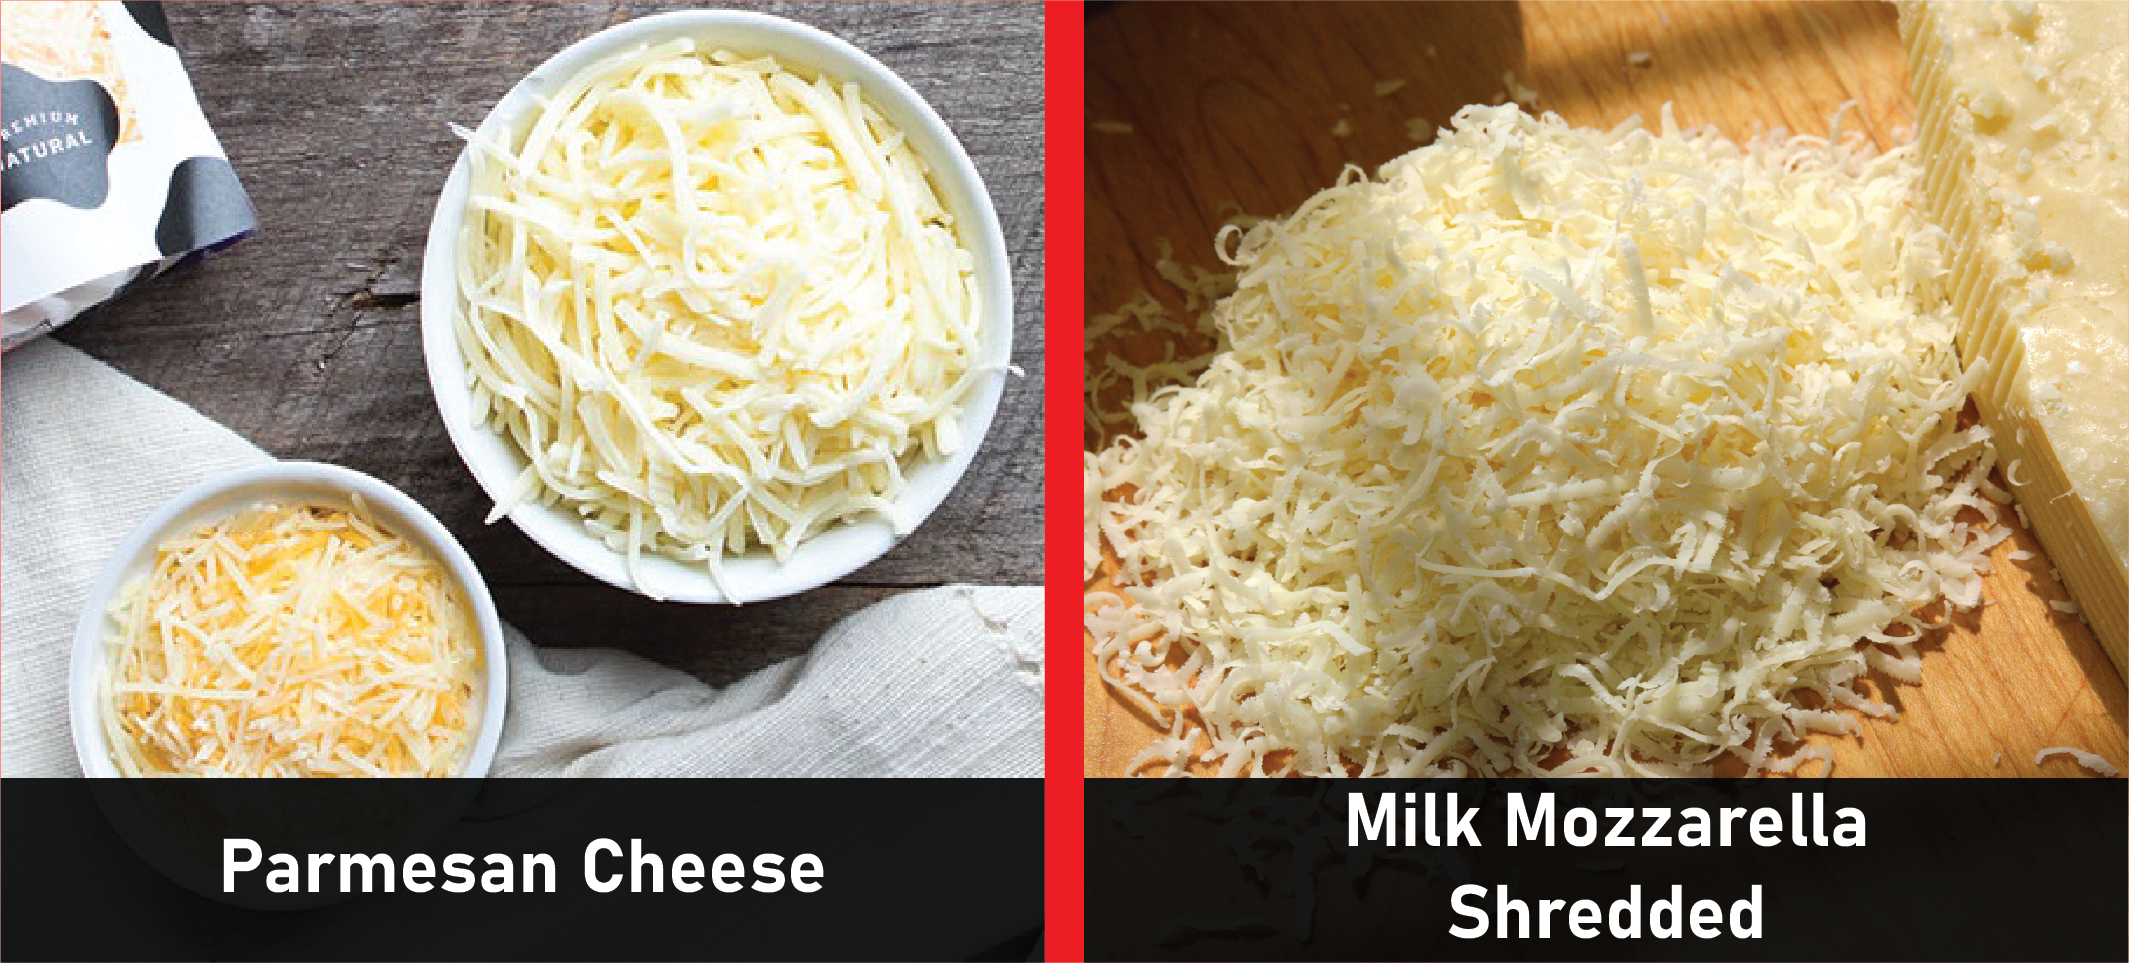 Cheese IngredientSS